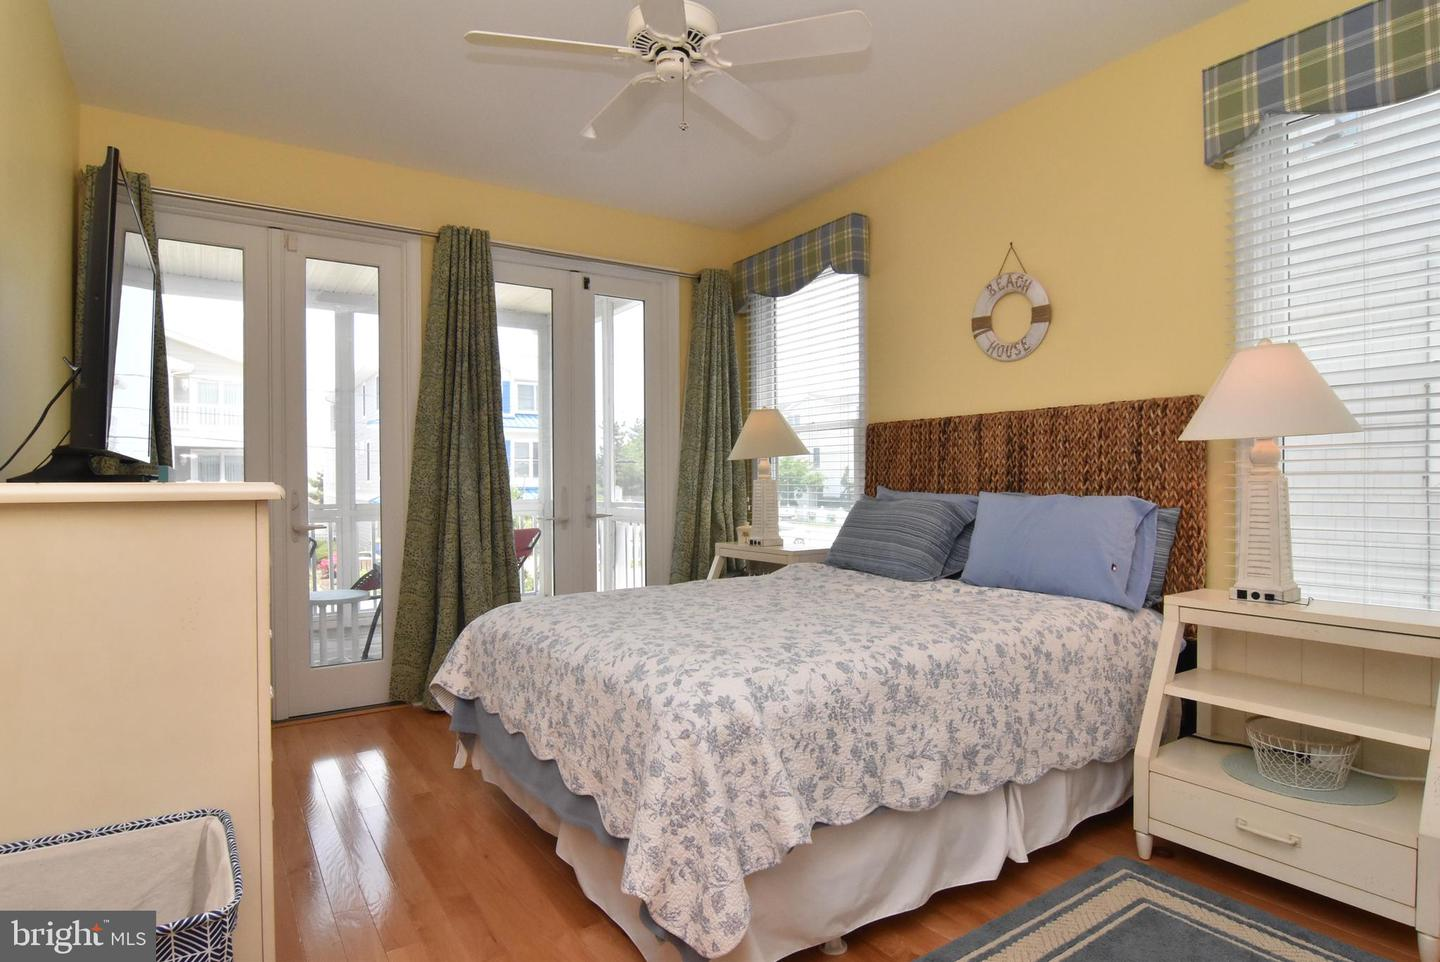 DESU141210-301754684605-2019-05-30-08-28-54 87 N Atlantic Ave | Bethany Beach, De Real Estate For Sale | MLS# Desu141210  - Suzanne Macnab